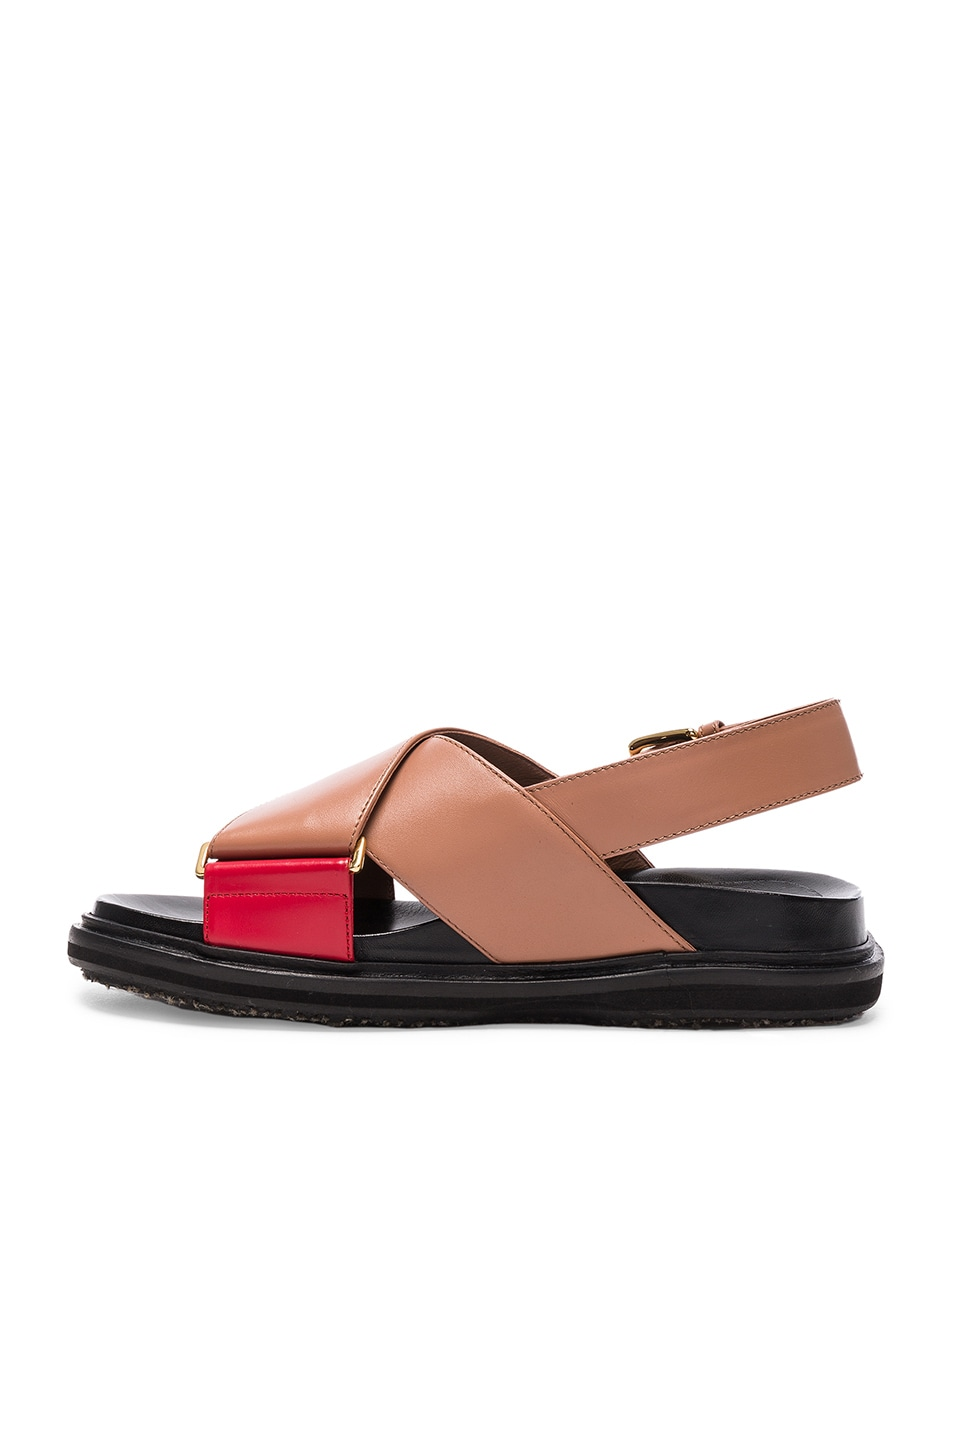 Image 5 of Marni Leather Fussbett Sandals in Cameo & Indian Red